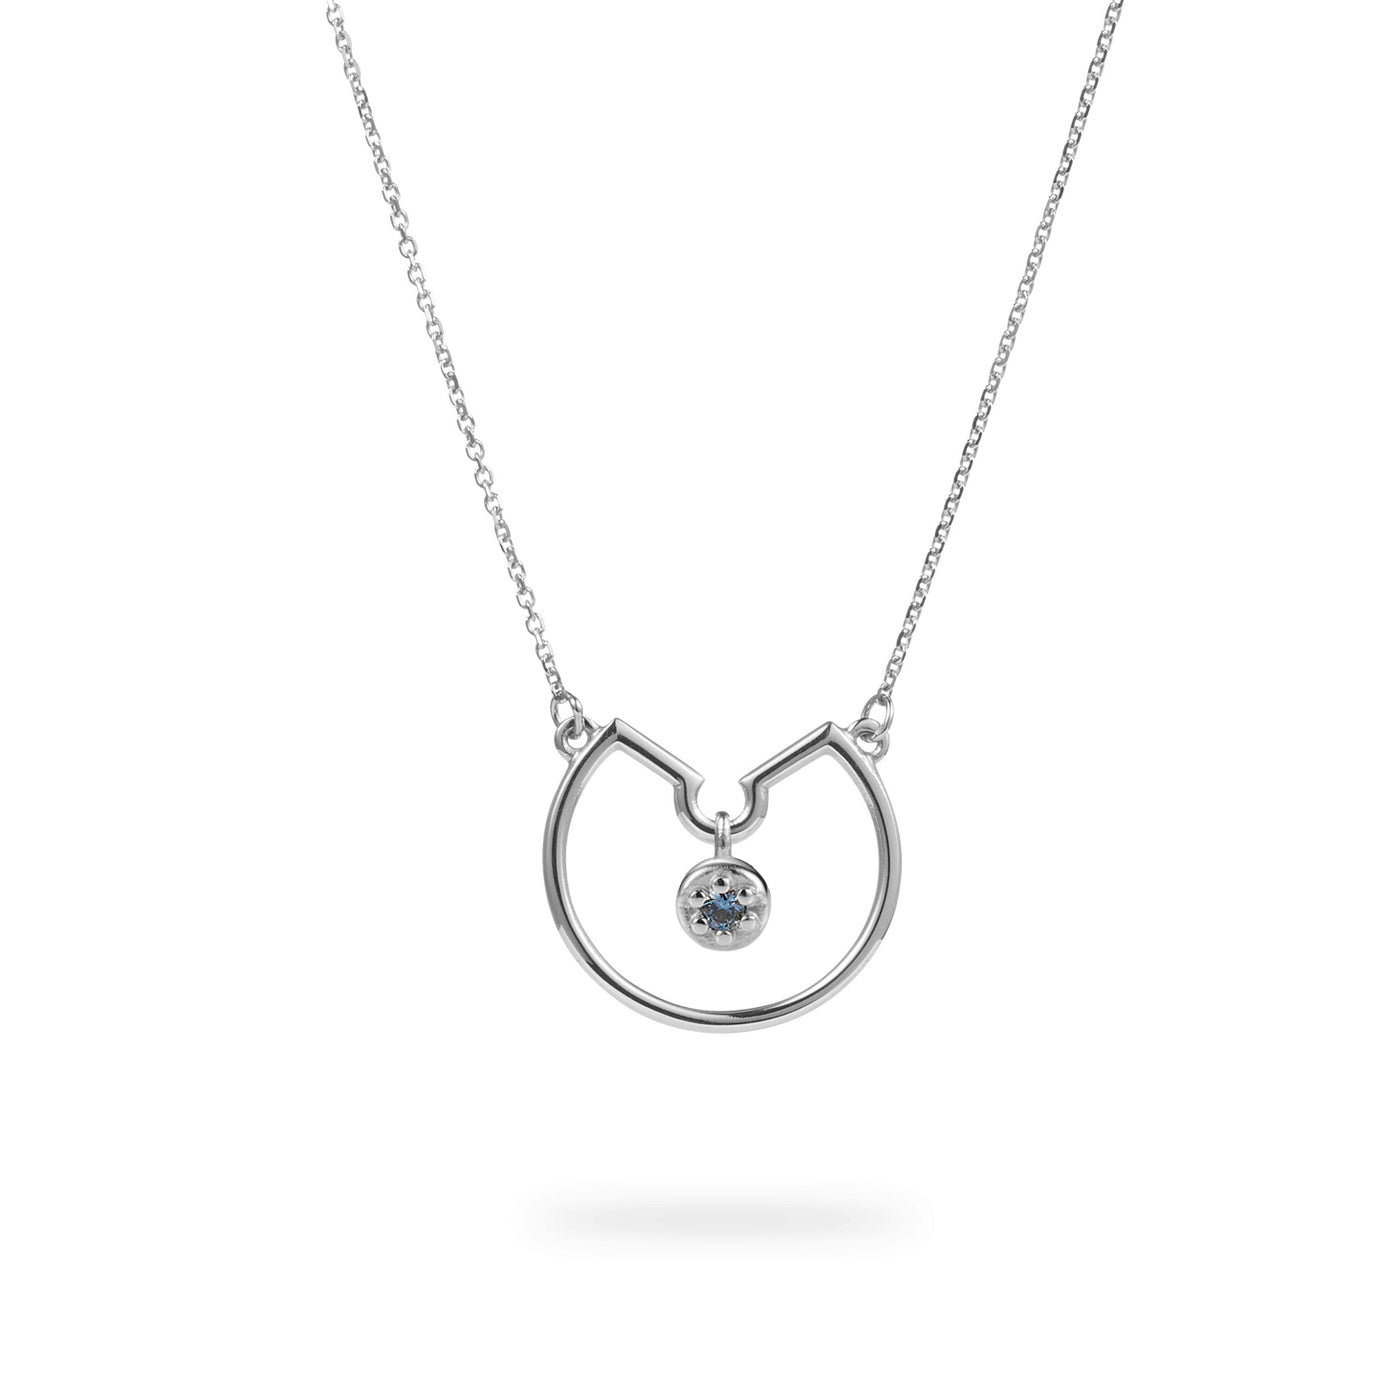 Luke Rose Jewellery Silver Blue Sapphire Necklace